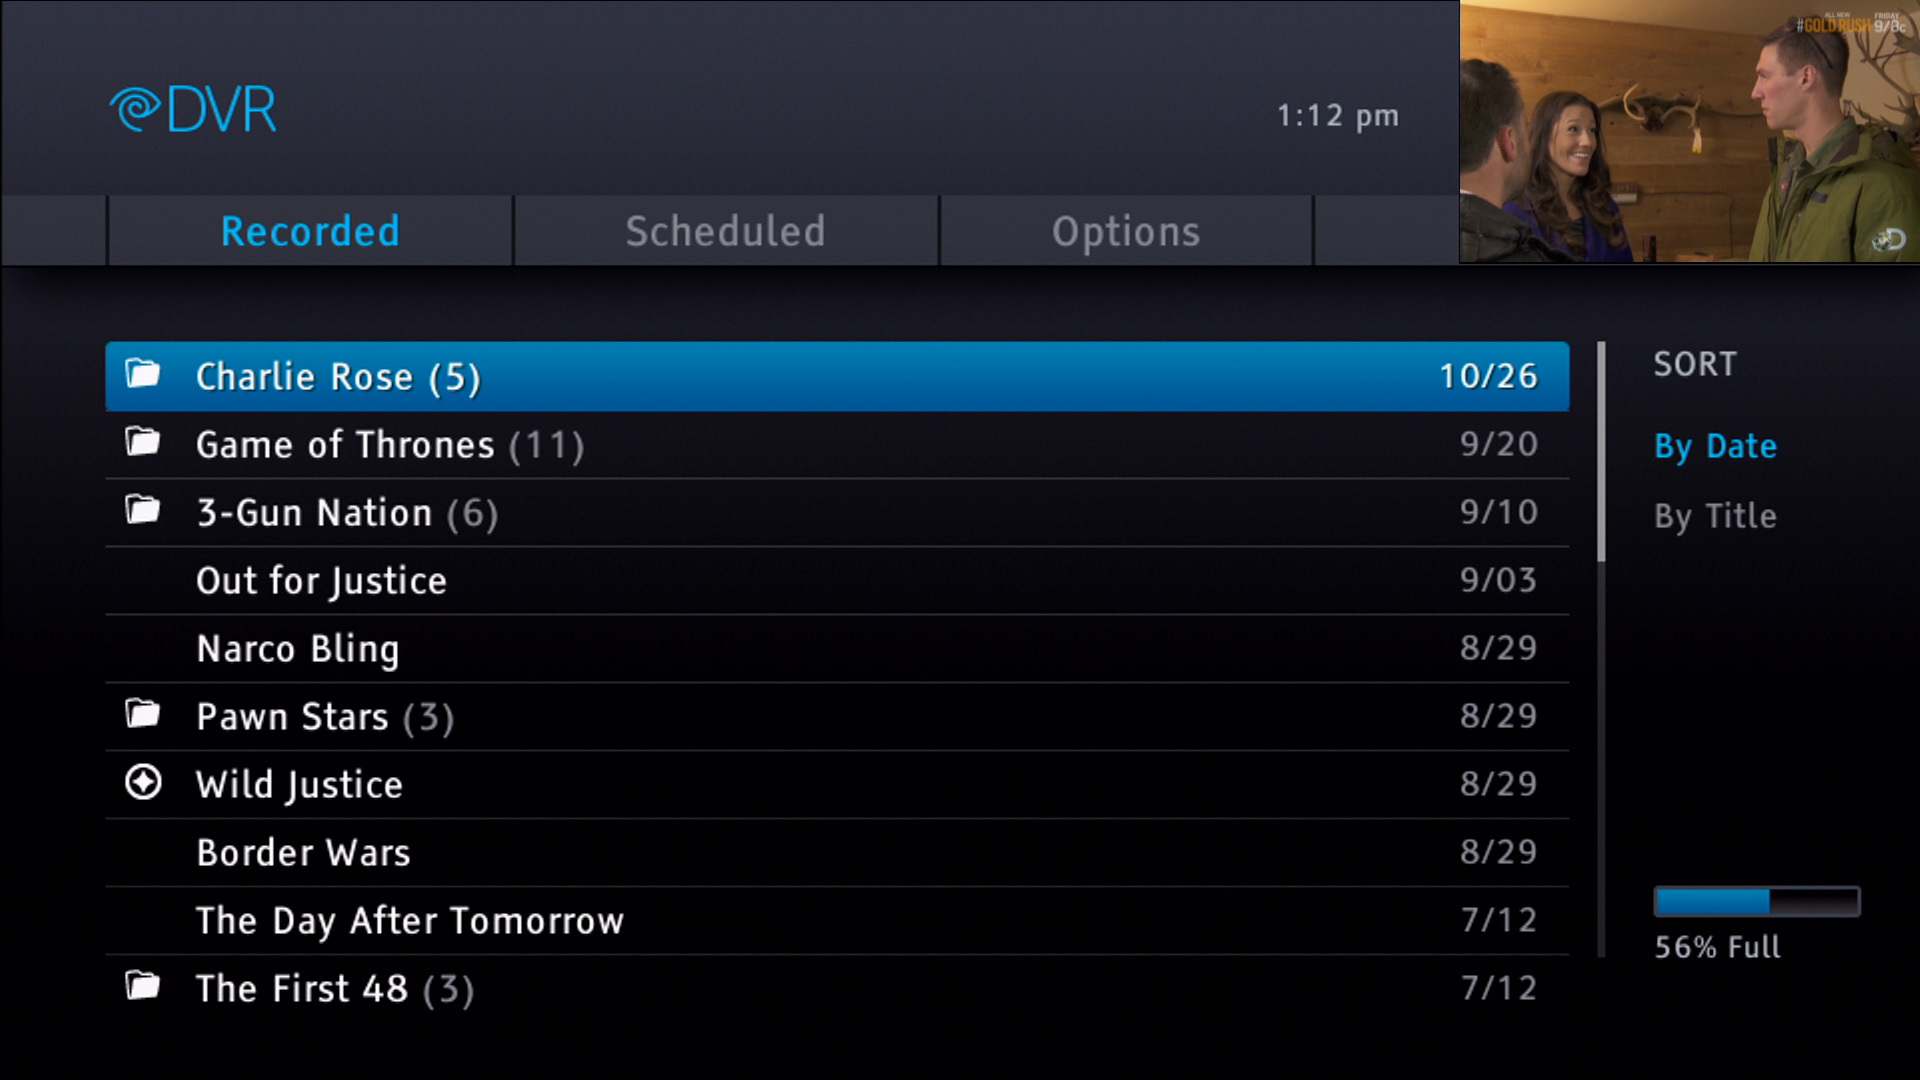 time warner cable cloud-based tv guide services improve customer